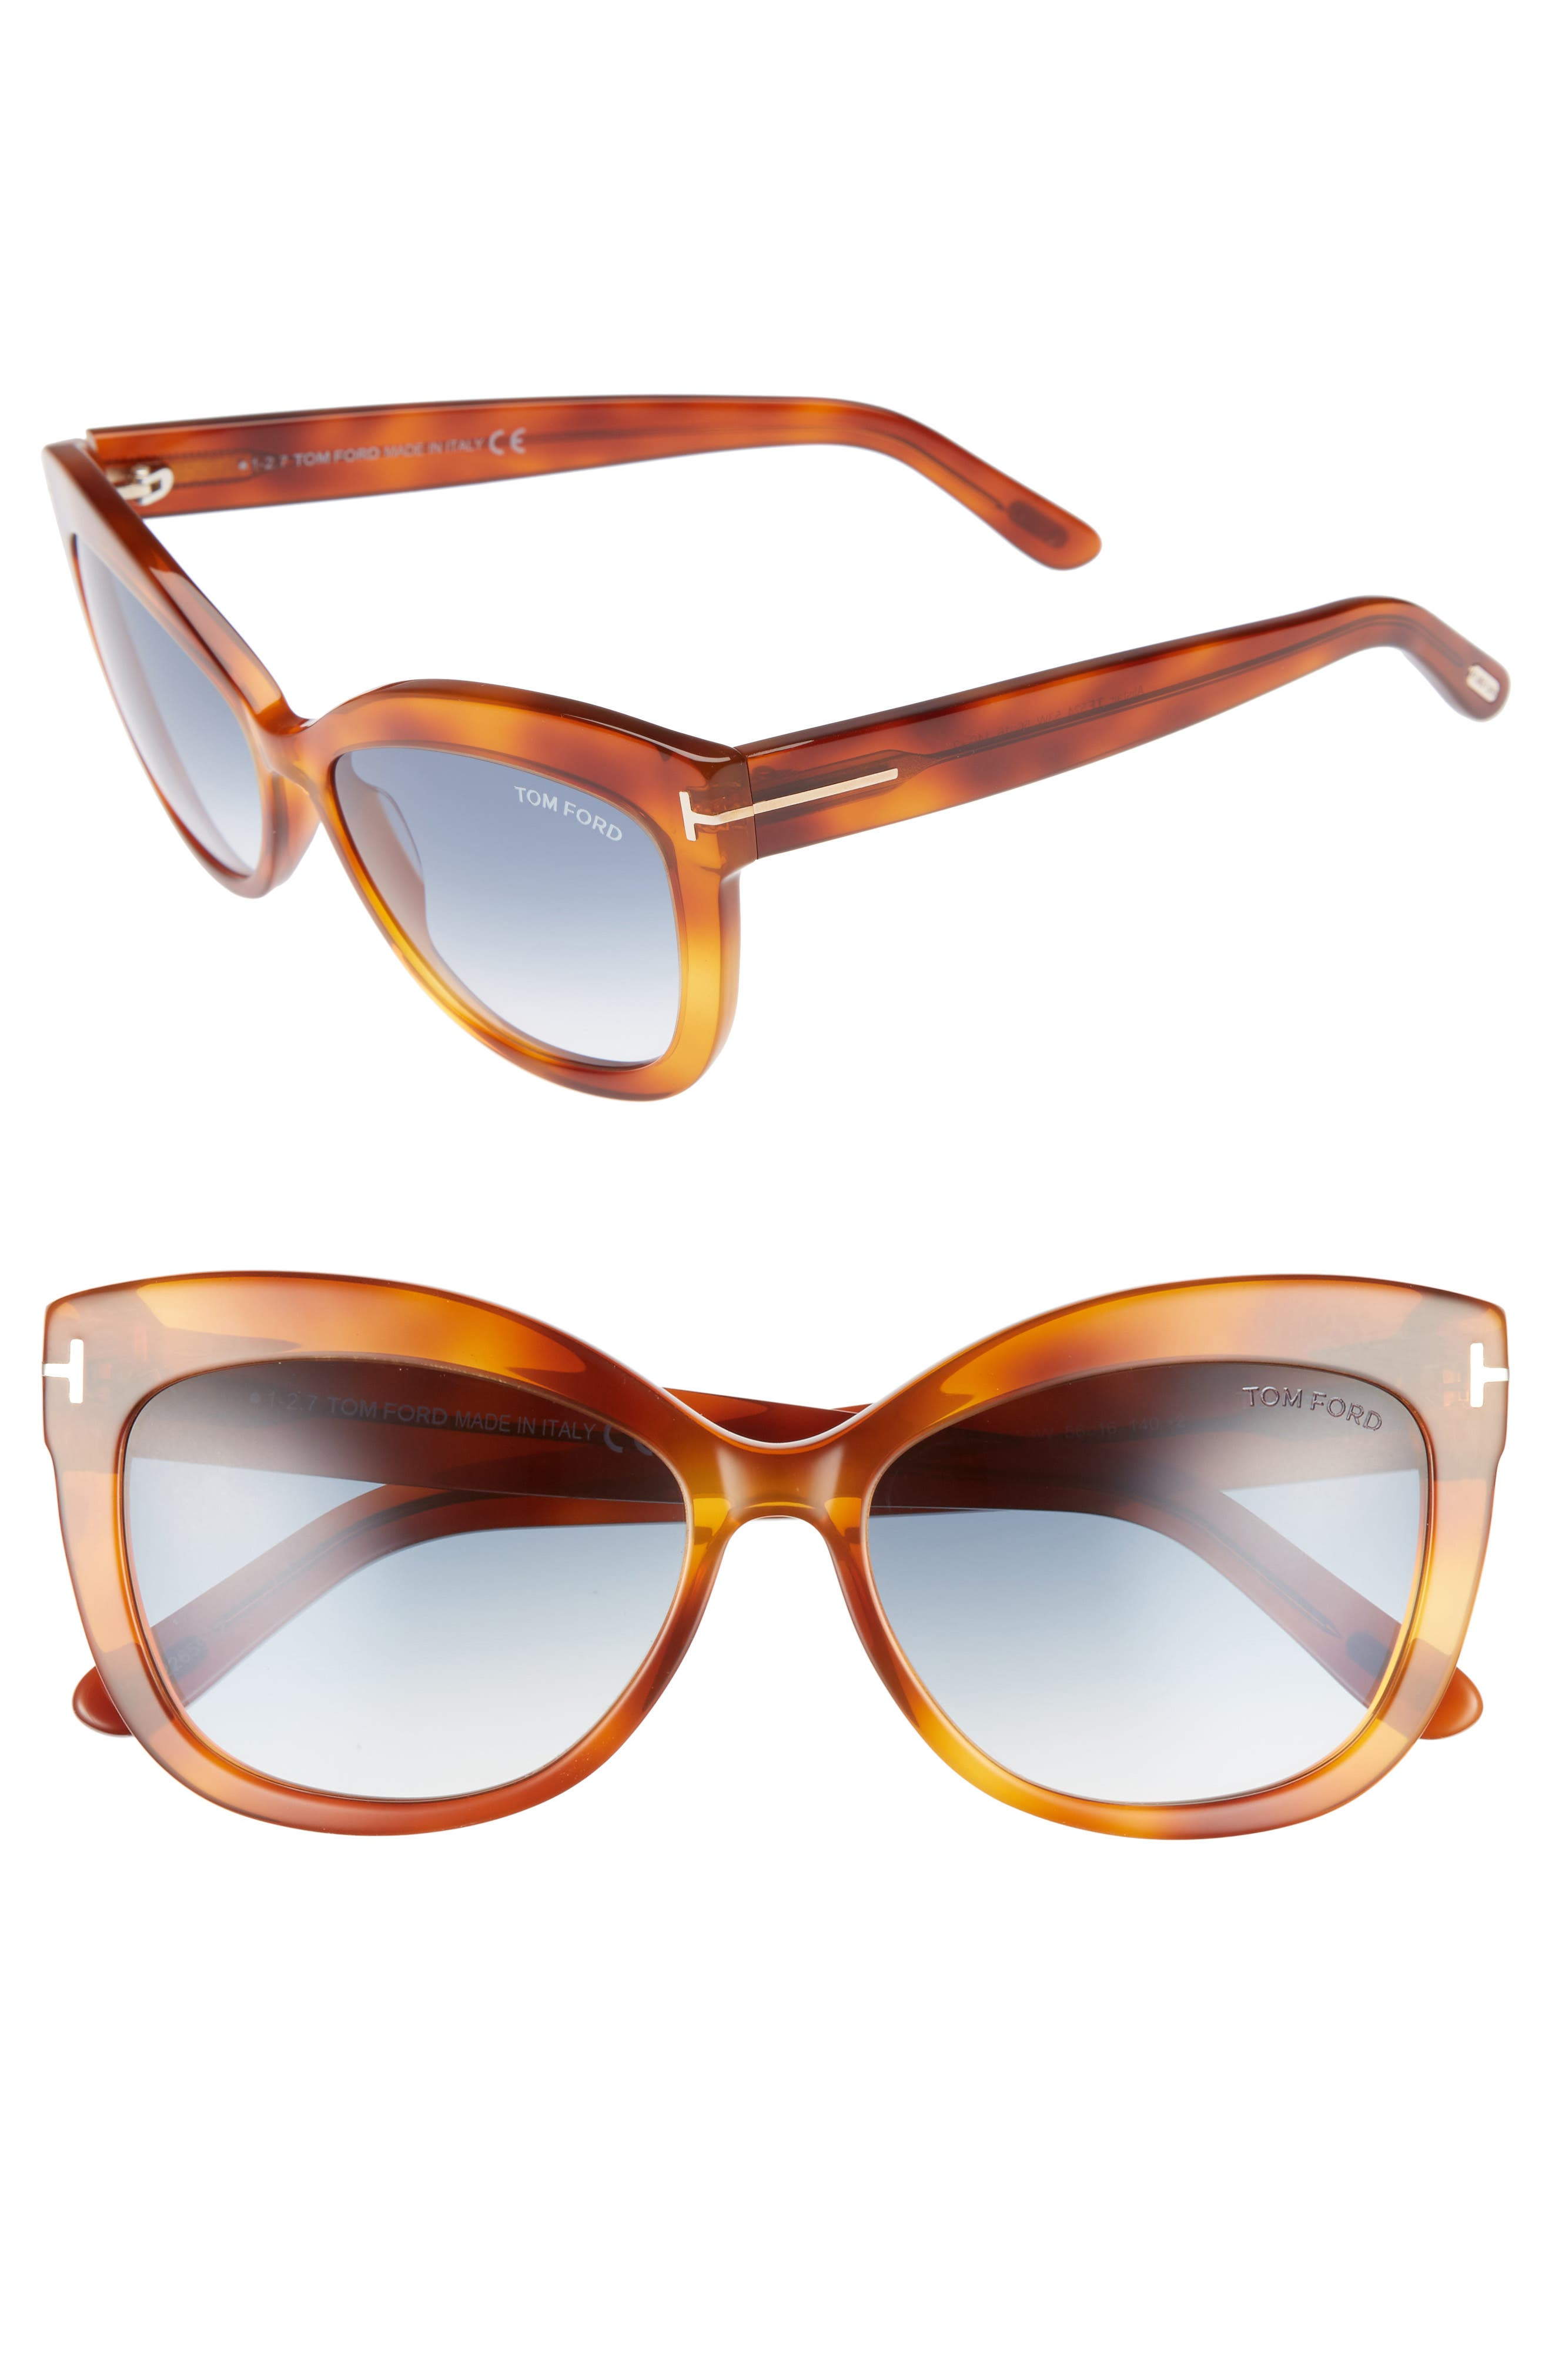 Main Image - Tom Ford Alistair 56mm Gradient Sunglasses